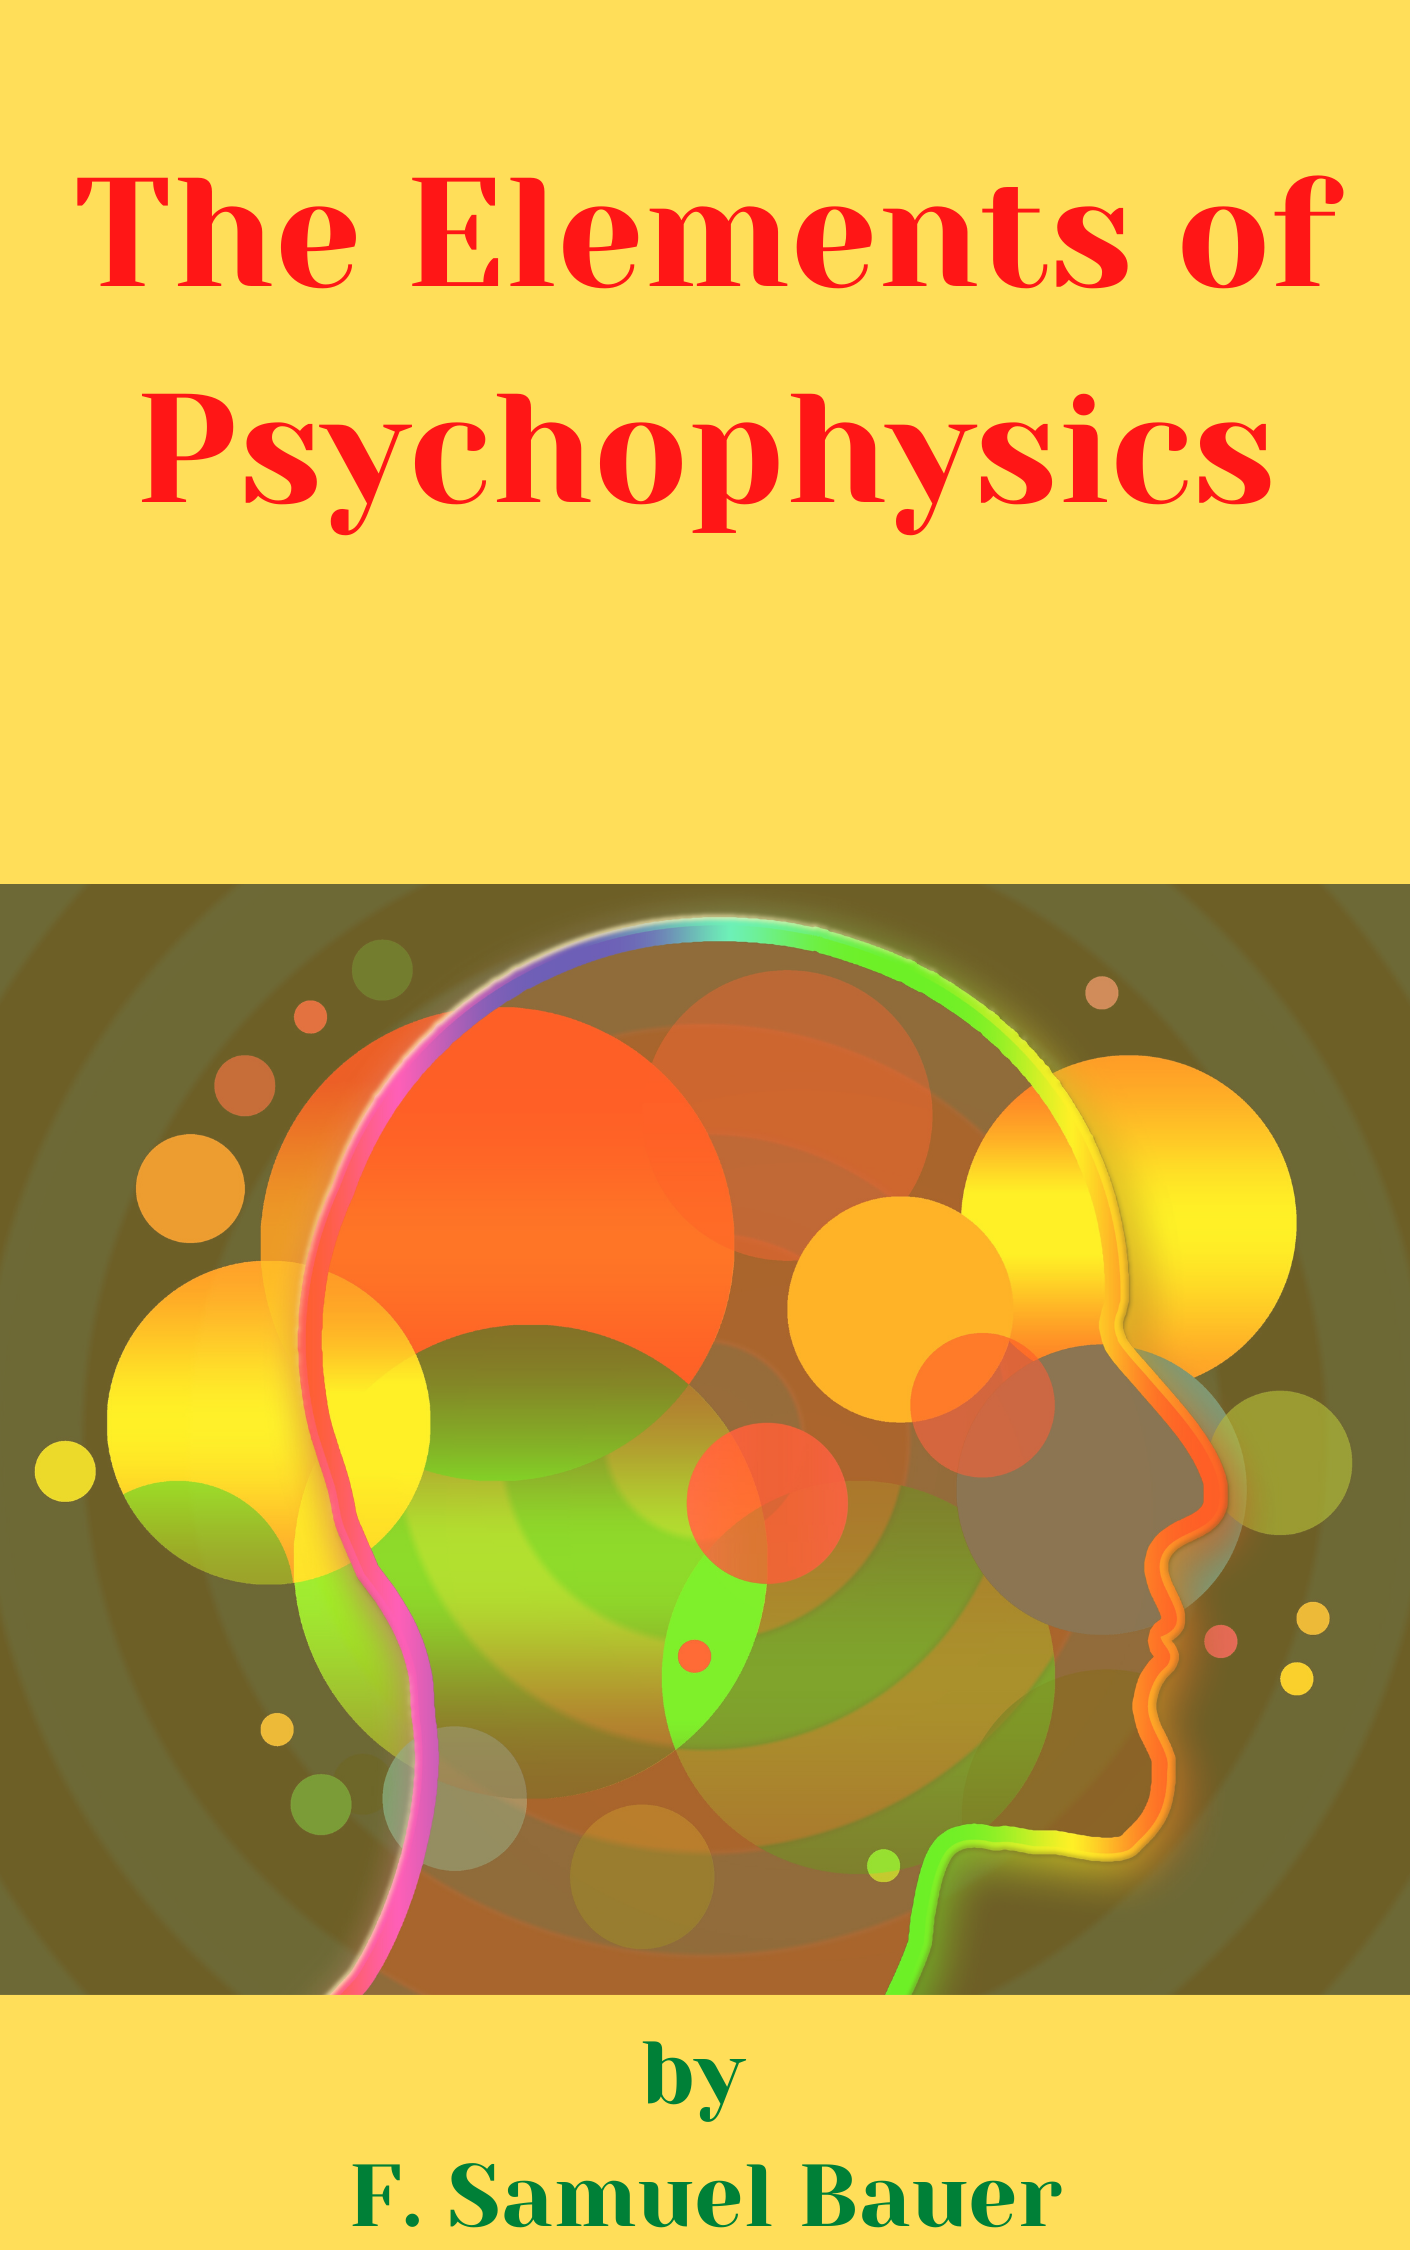 The Elements of Psychophysics